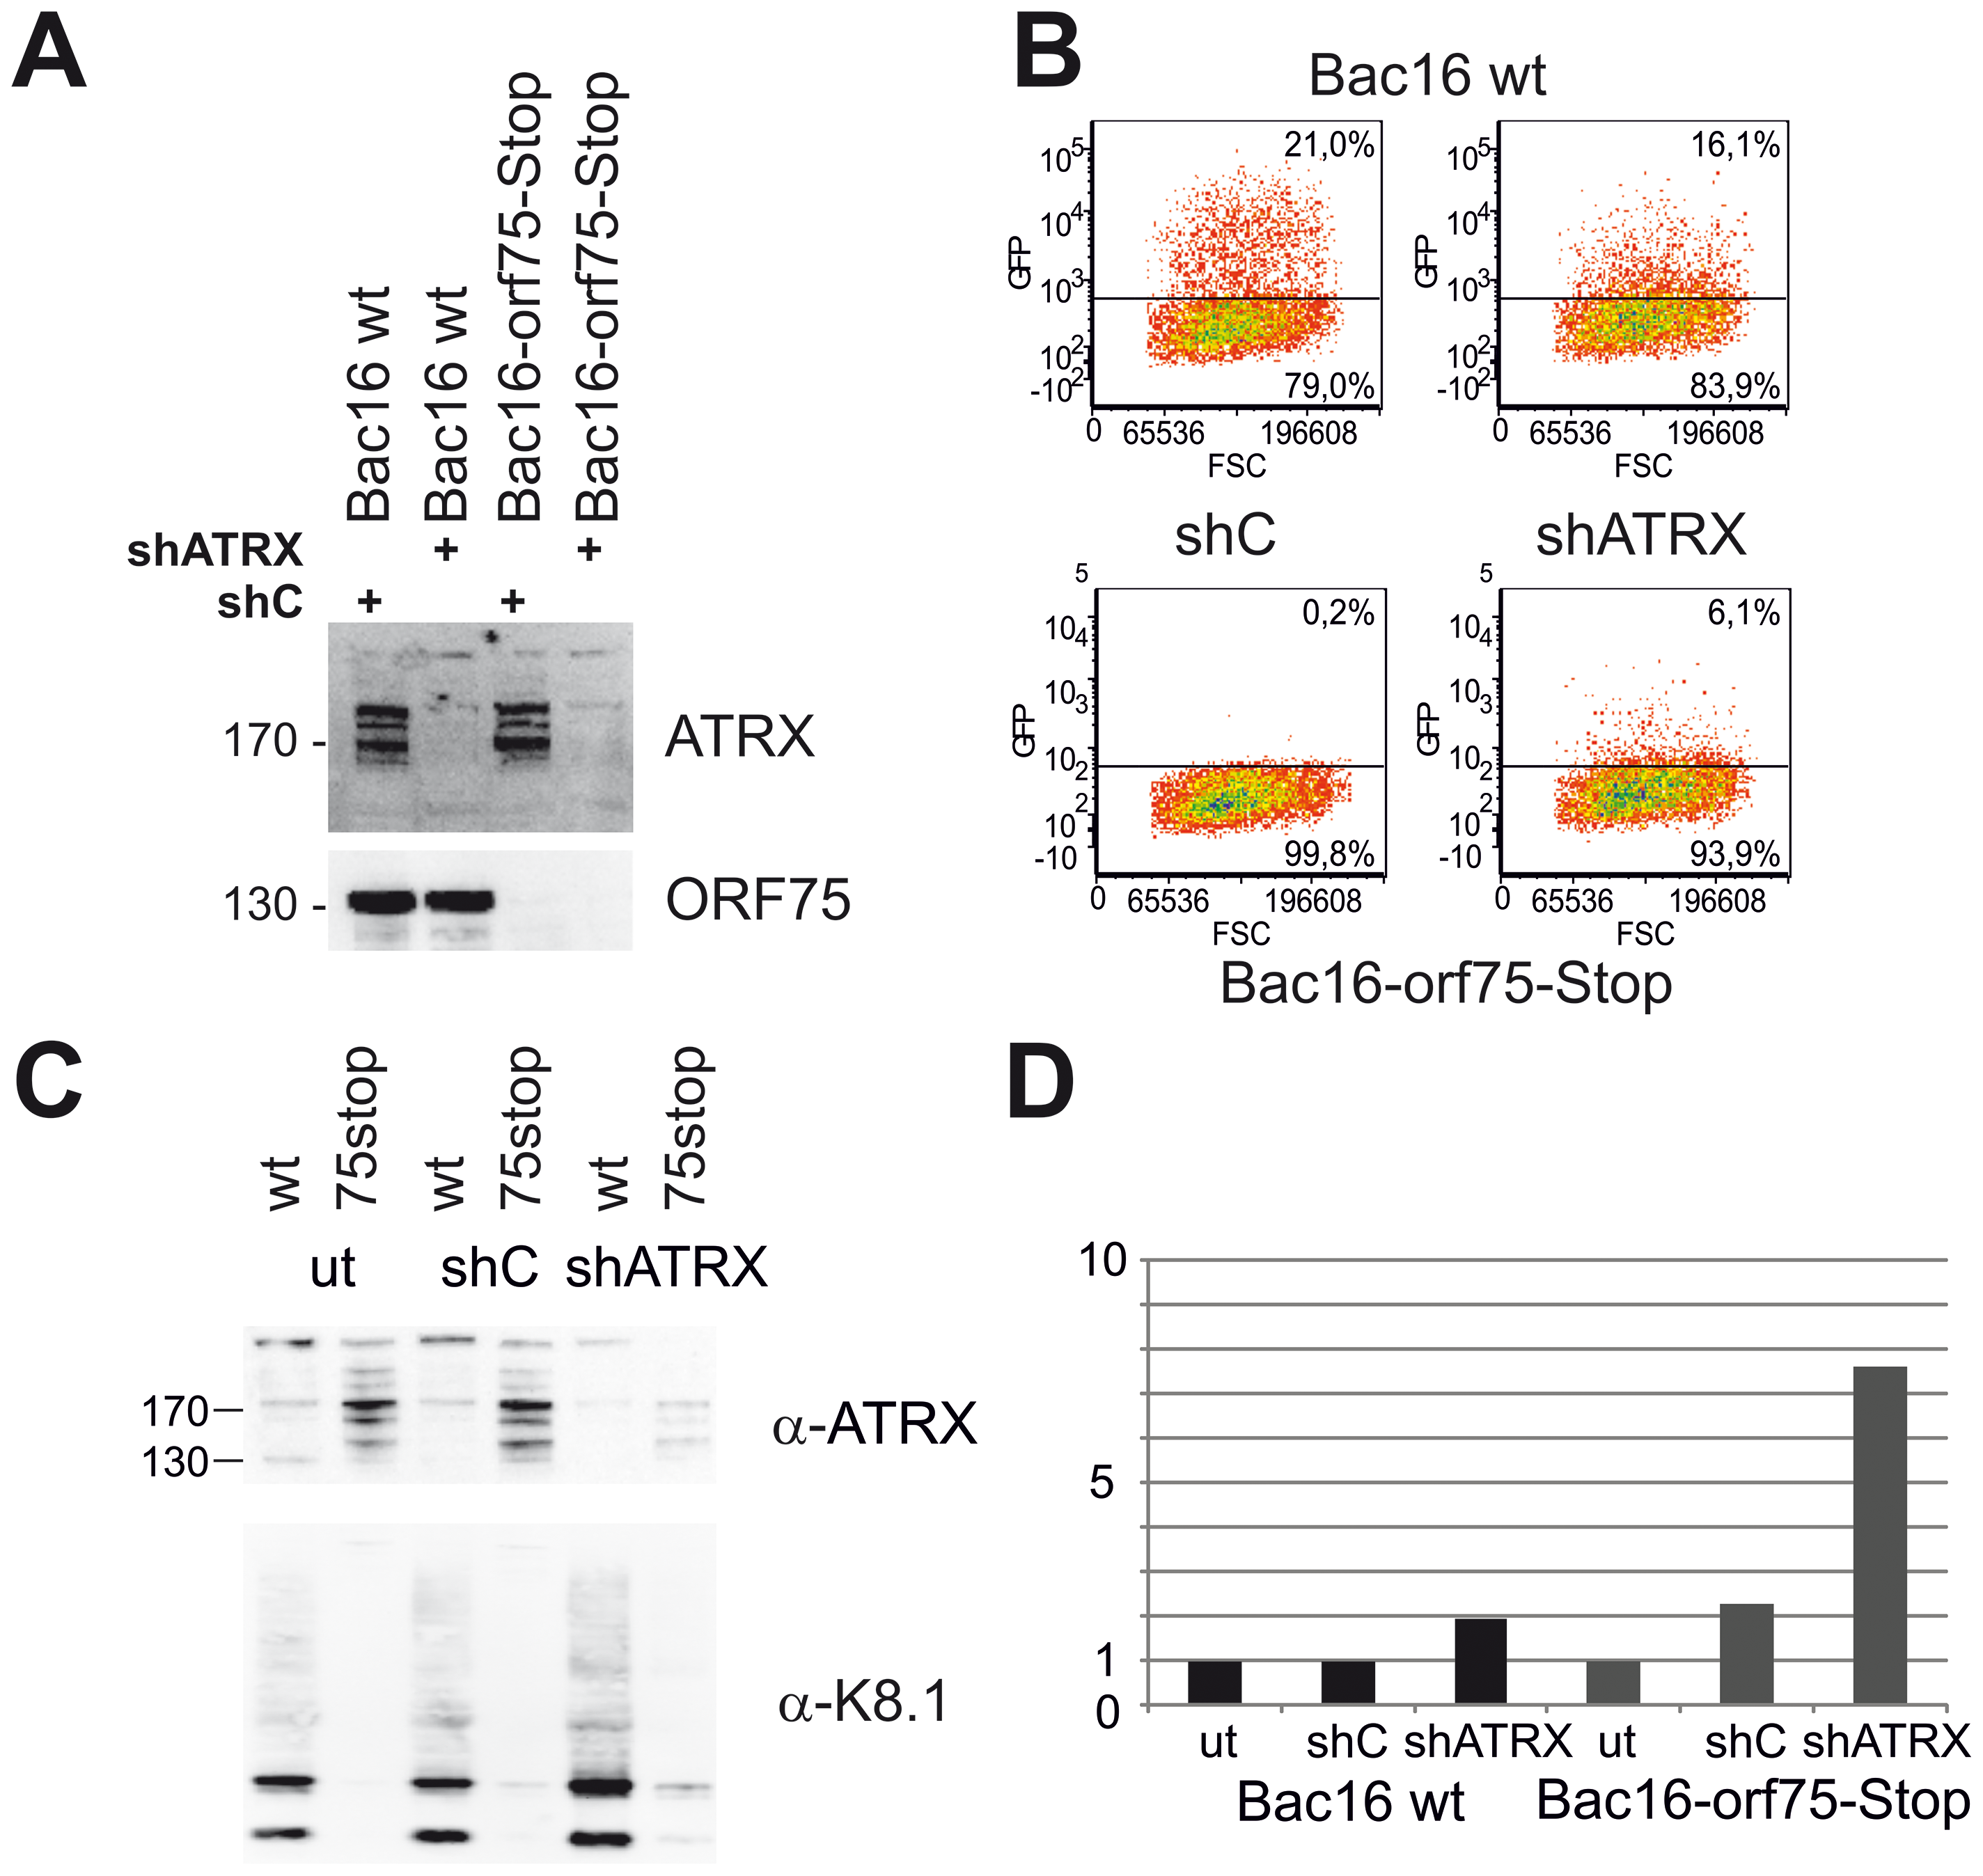 KSHV Bac16-orf75-Stop cells can be complemented by knock-down of ATRX.